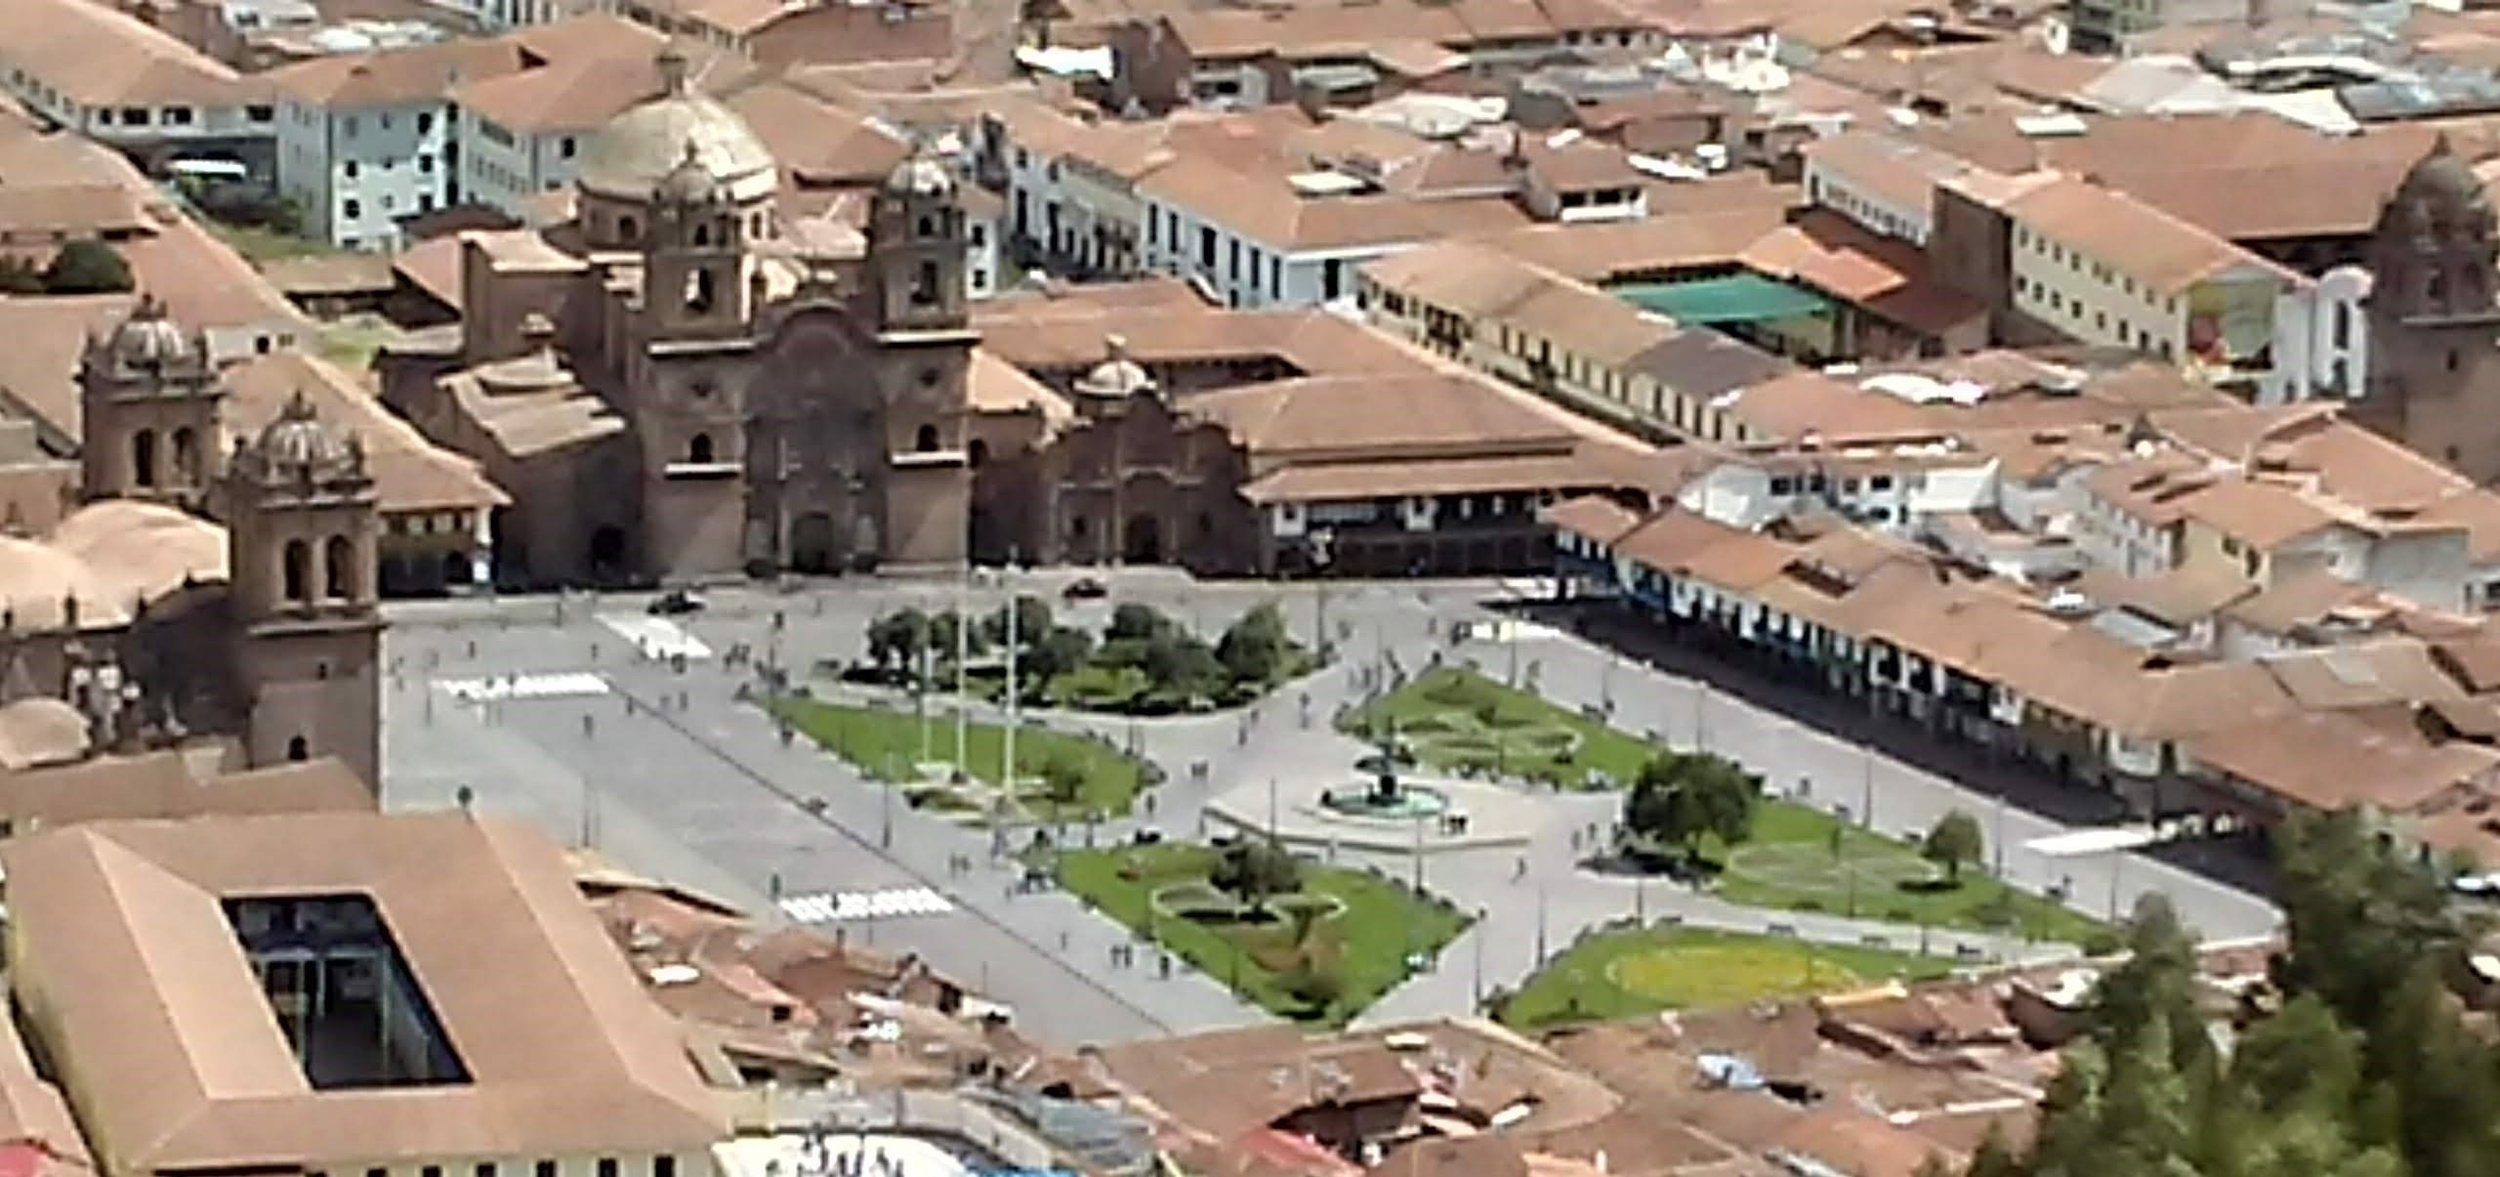 Main plaza from above.jpg